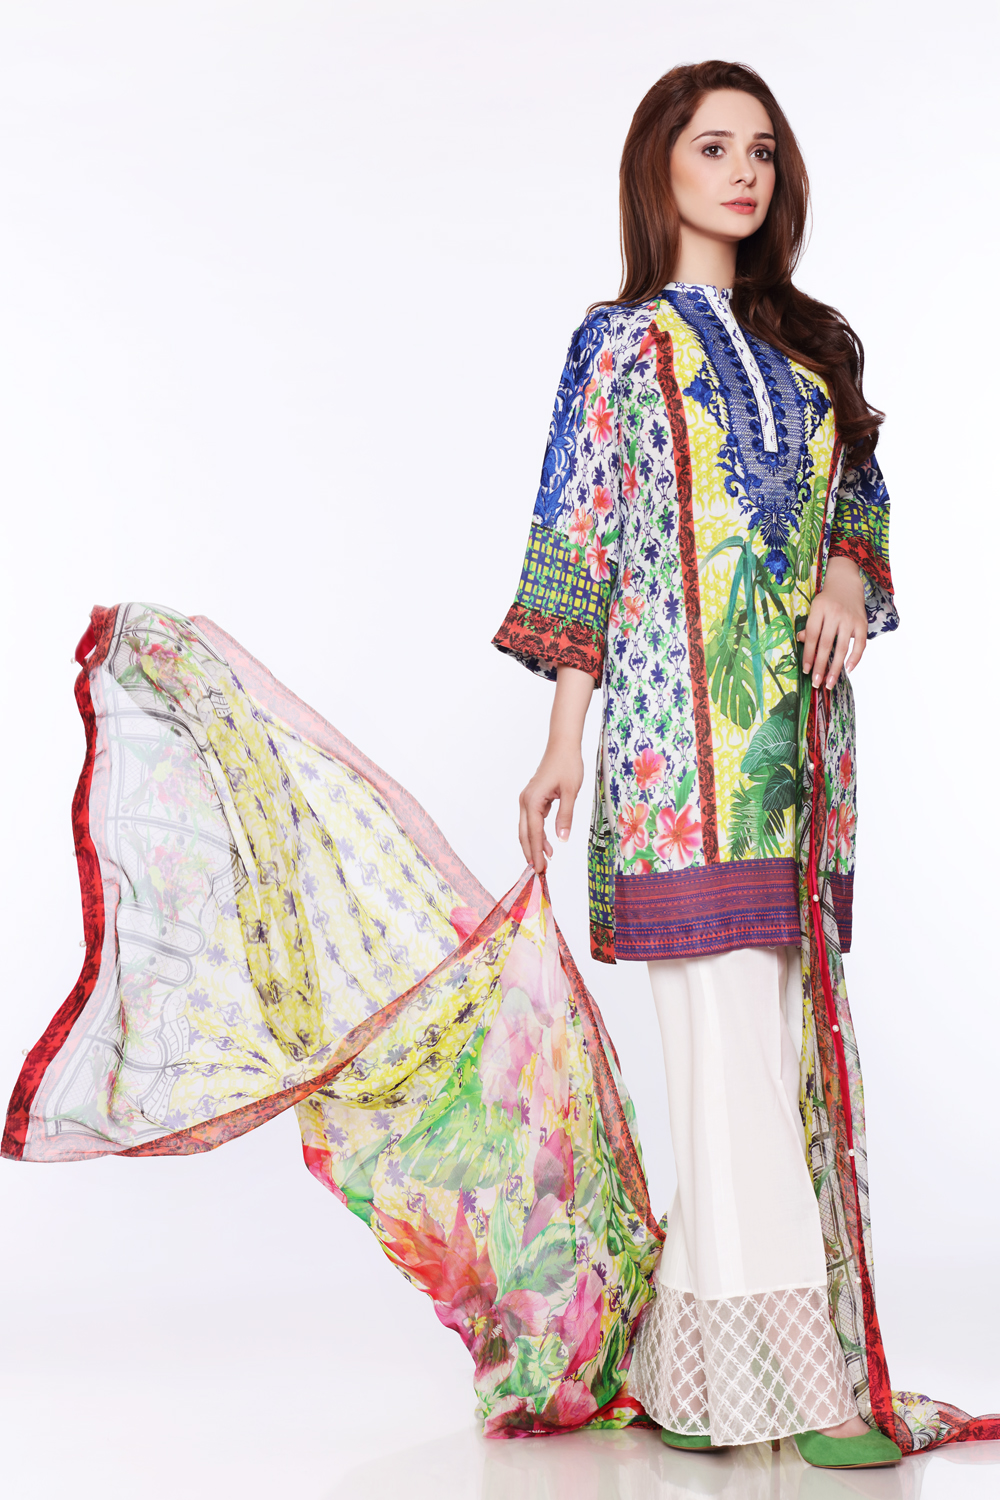 Juggan's Glided Glamous Unstitched 3-piece lawn